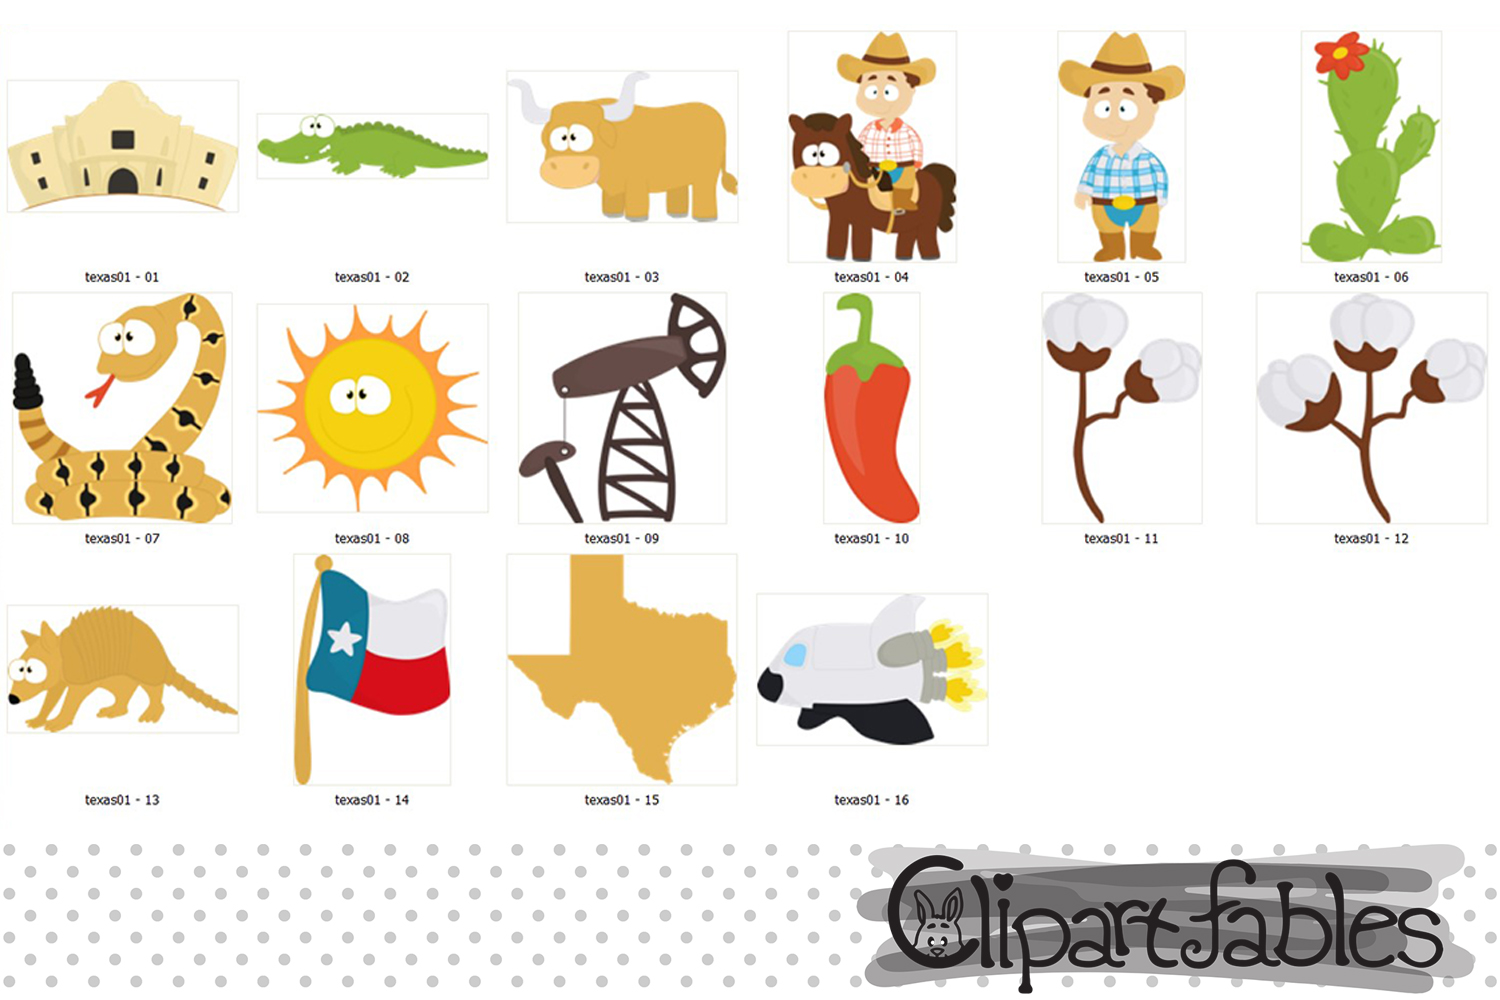 TEXAS State clipart, Cute Texas graphic, Texas map - INSTANT example image 2